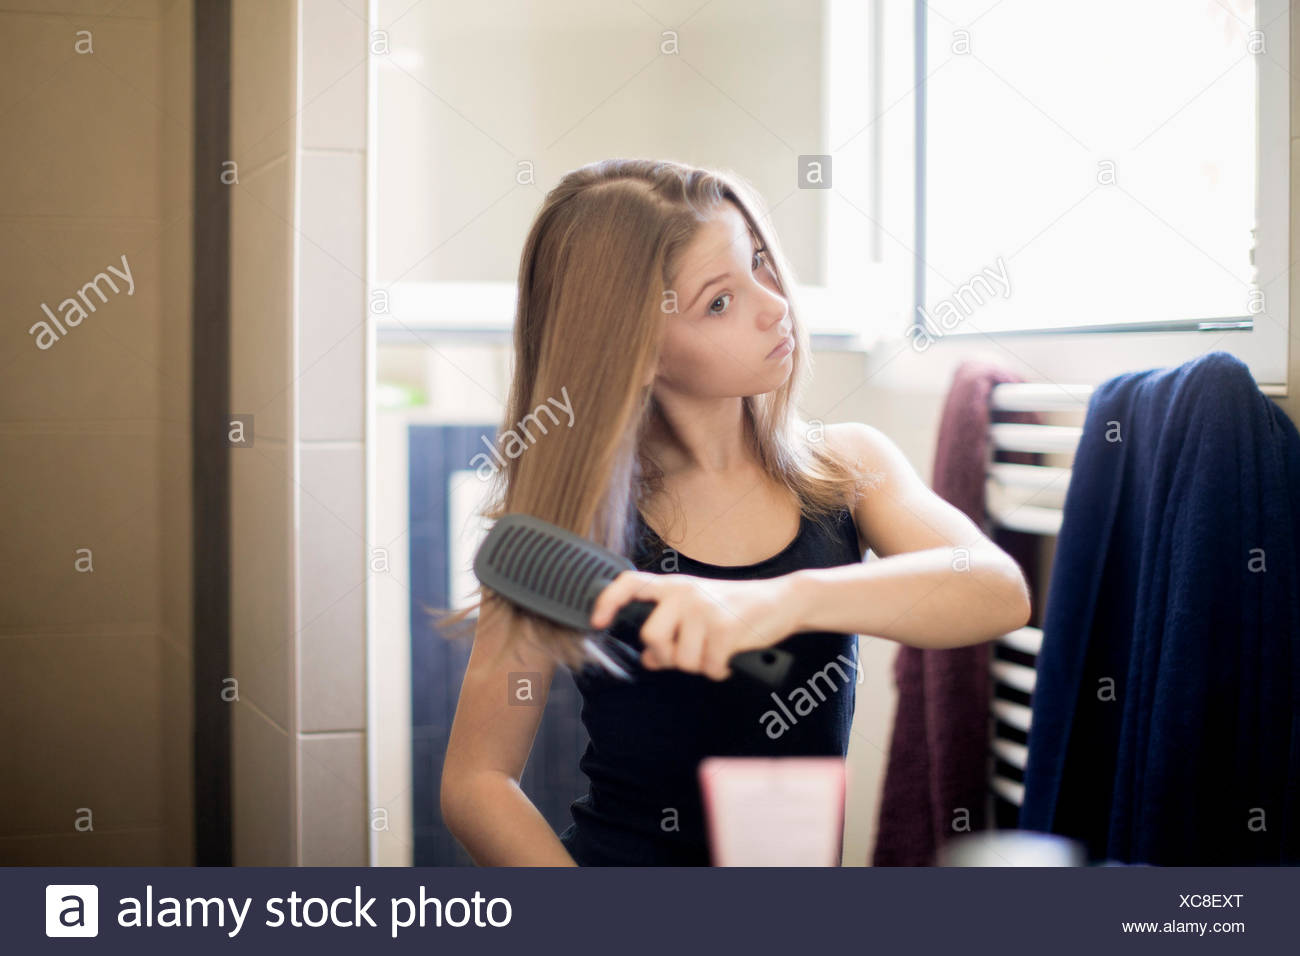 Teenage girl getting hair care with brush - Stock Image